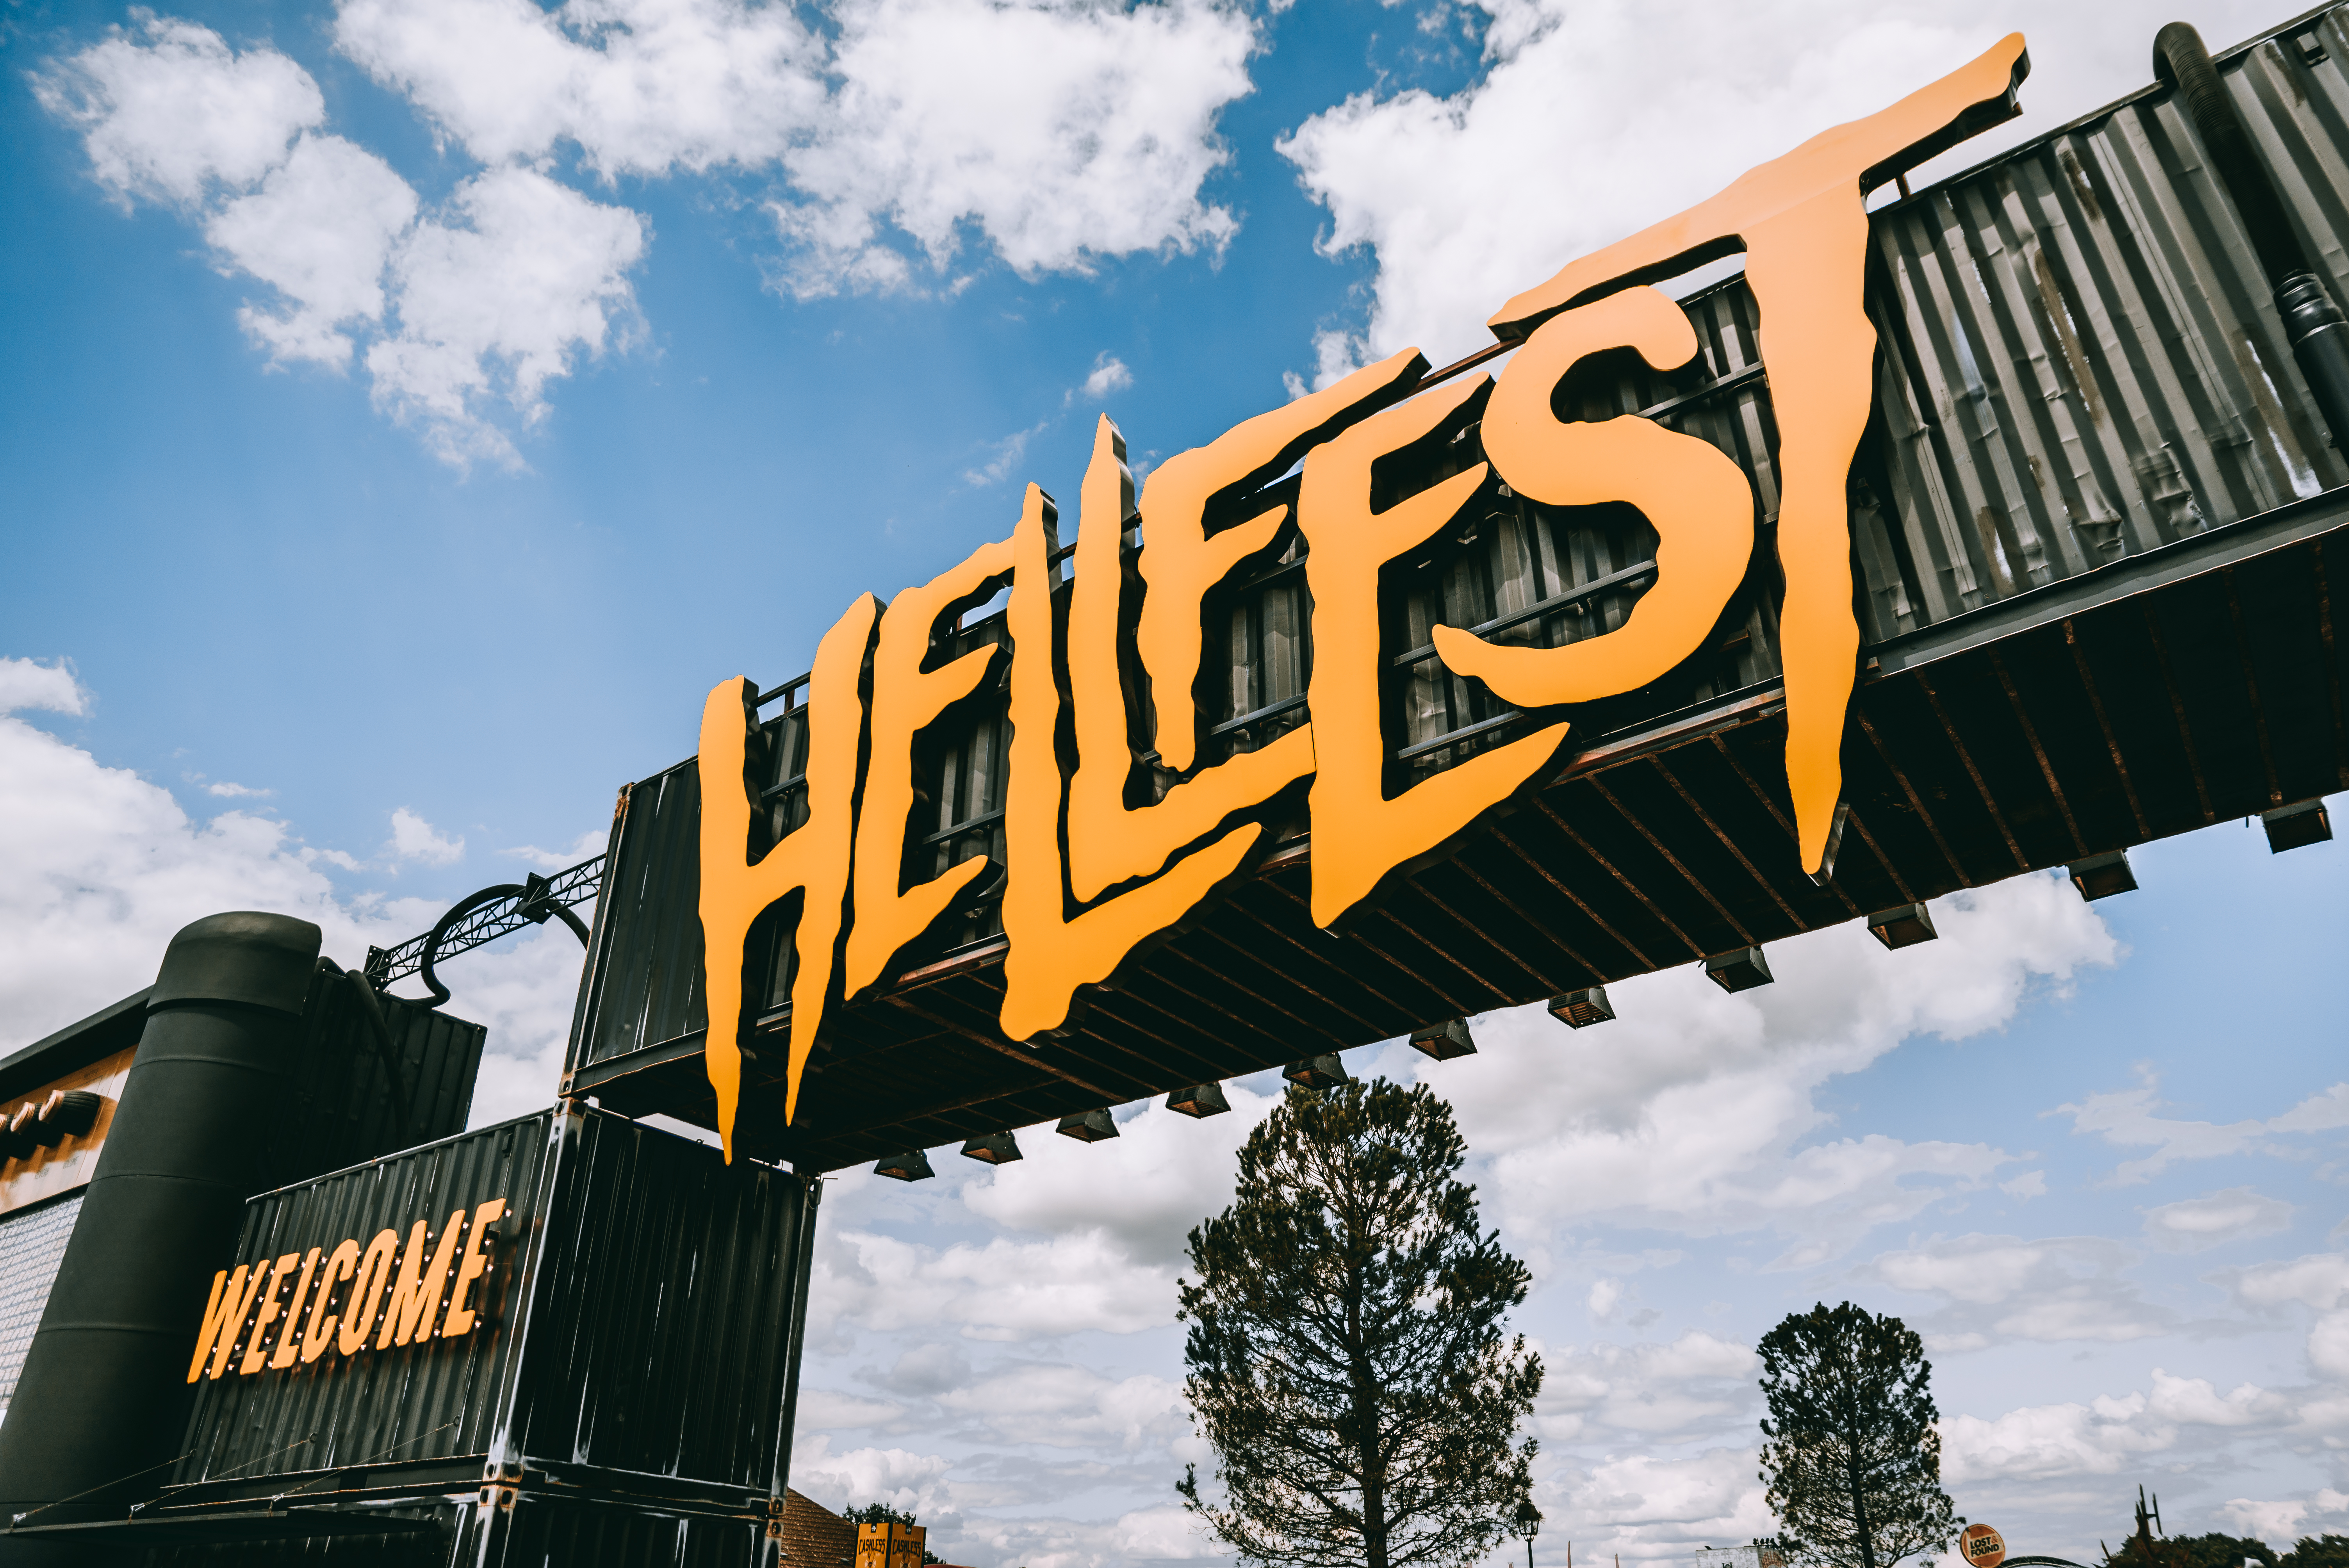 Hellfest 2019: on y était, on vous raconte